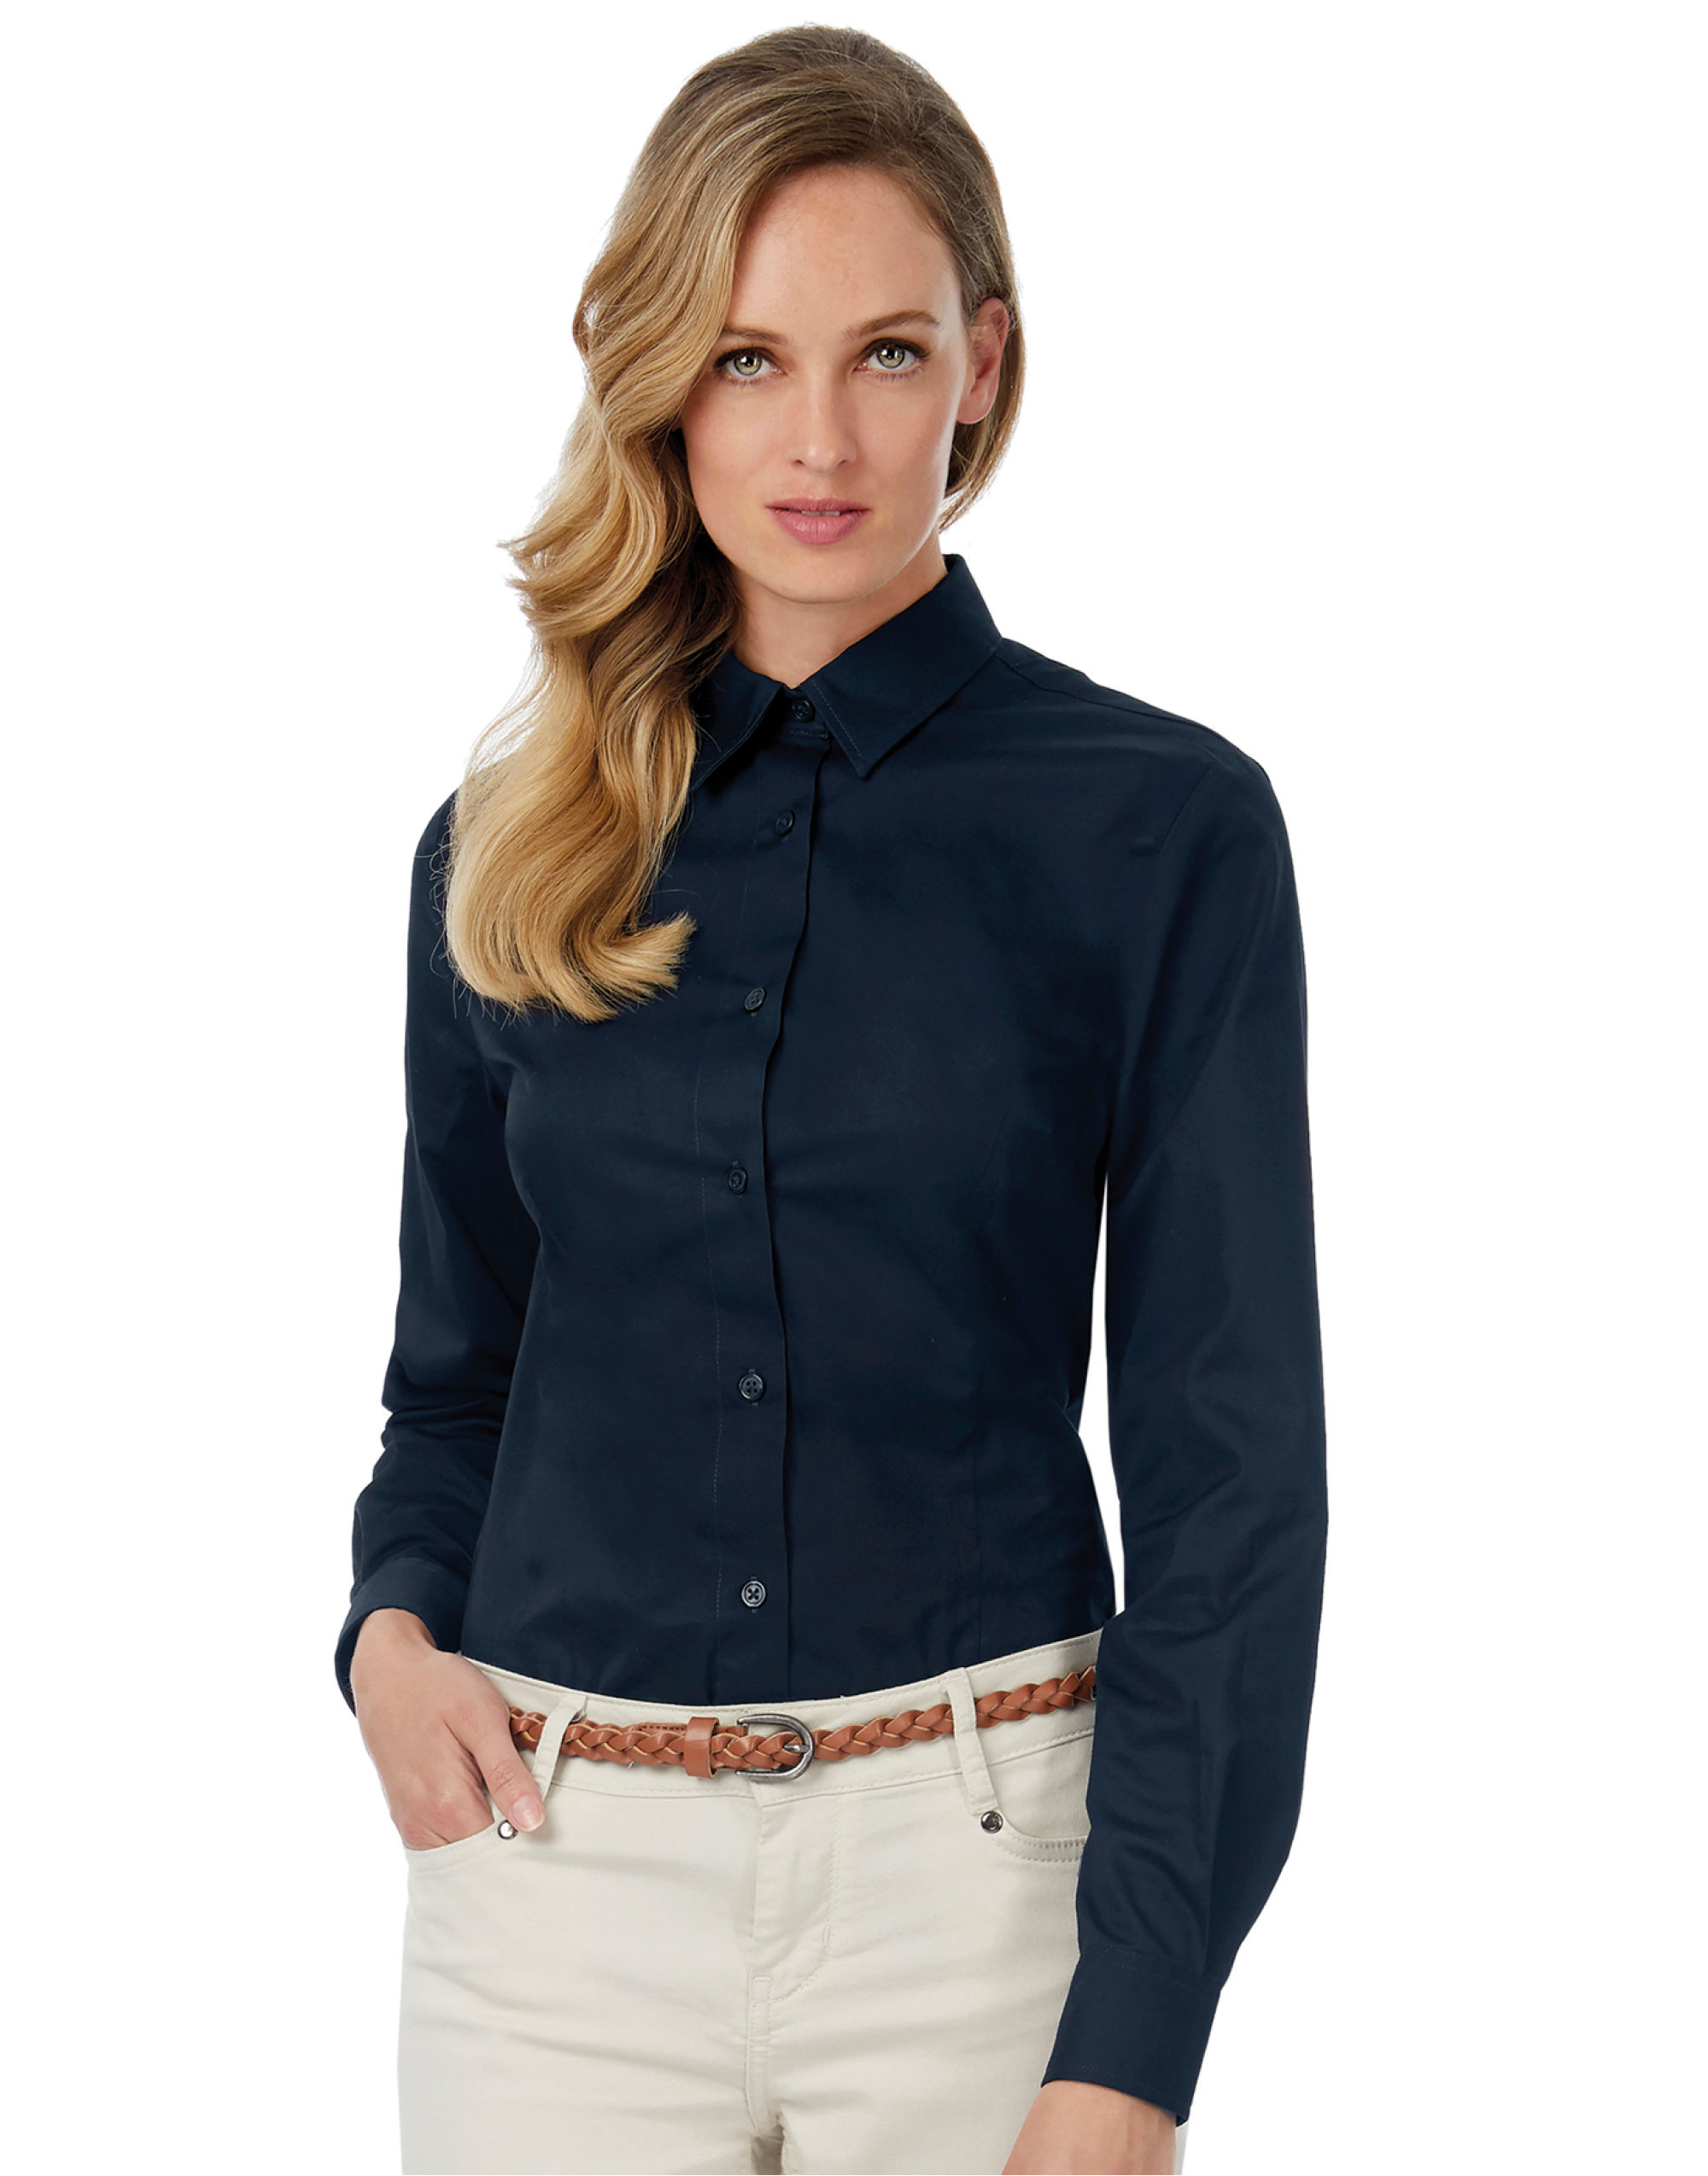 B&C Women's Sharp Twill Long Sleeve Shirt